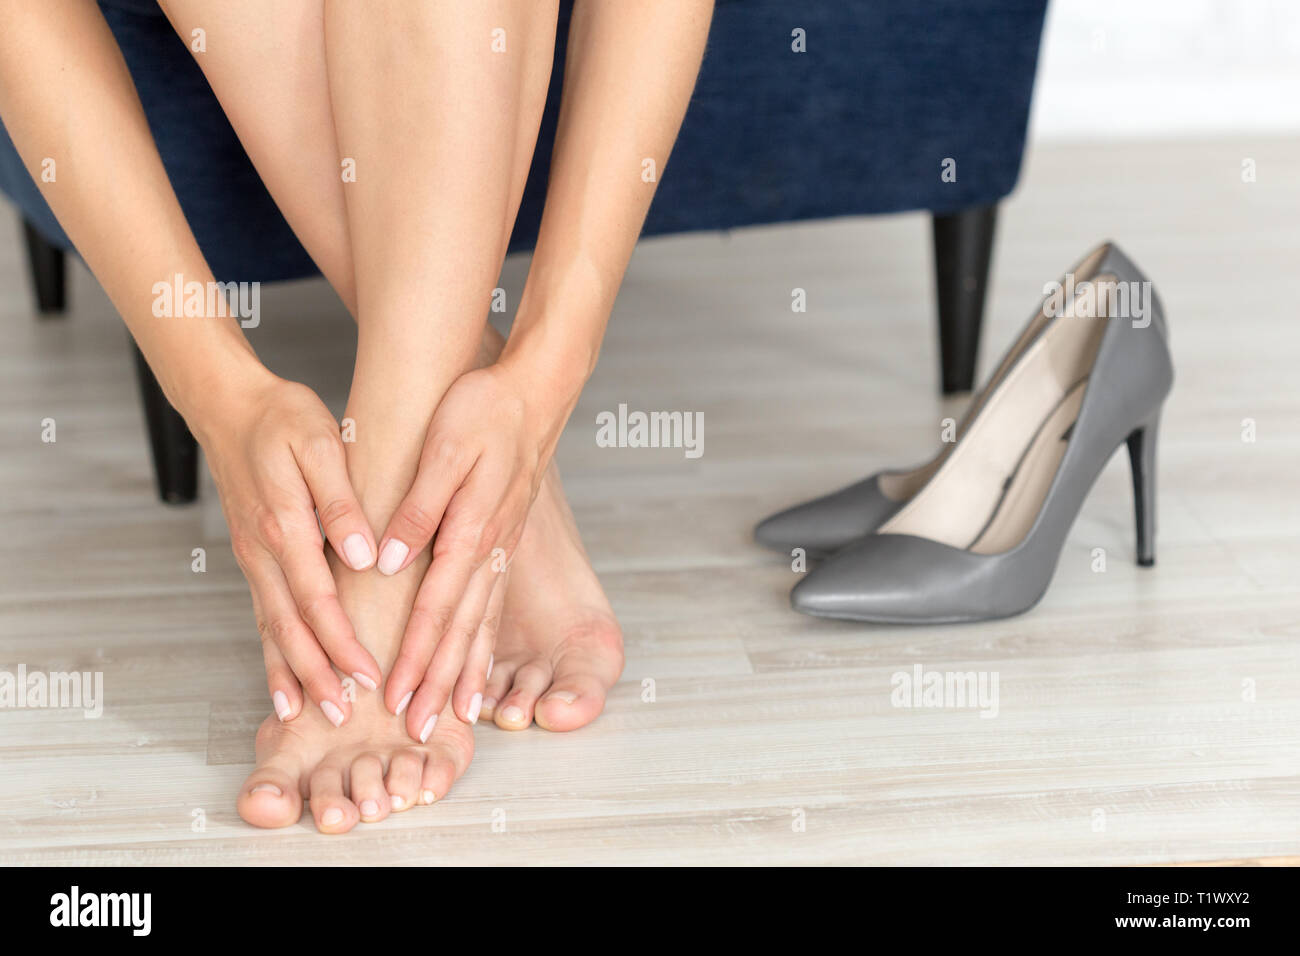 Tired and aching female feet after walking Stock Photo